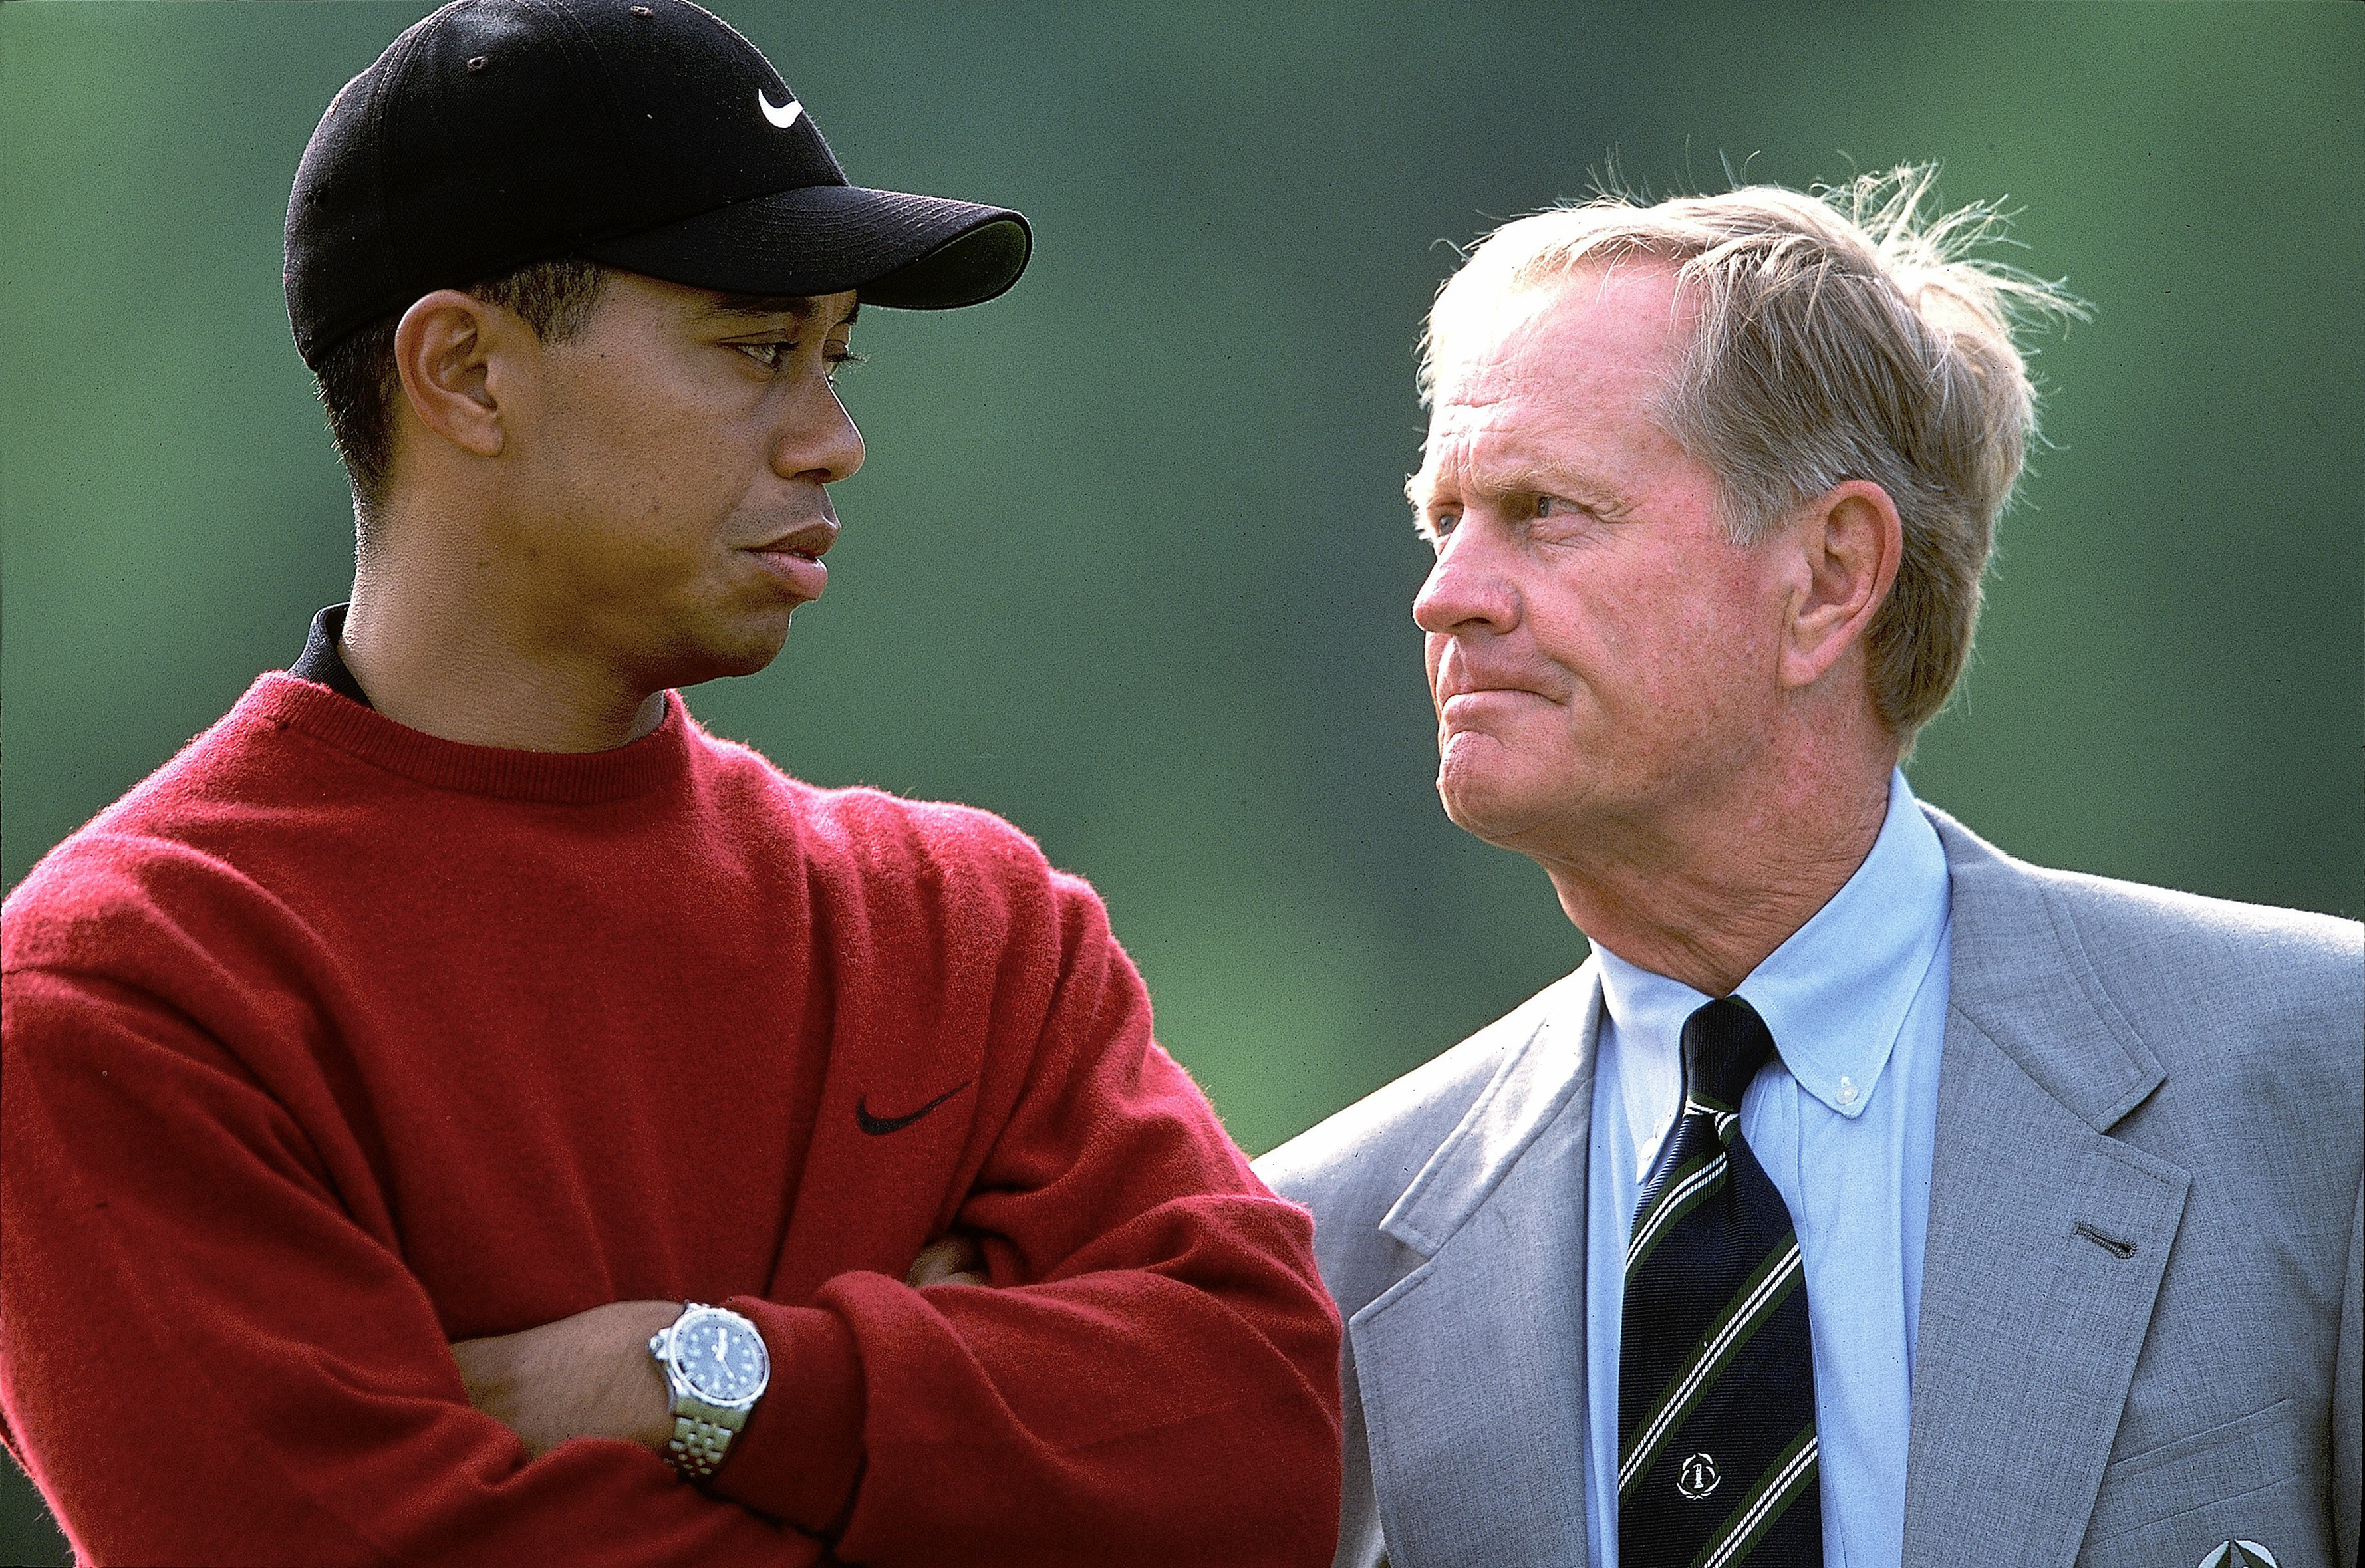 Tiger Woods and Jack Nicklaus at Muirfield Village in 2001.